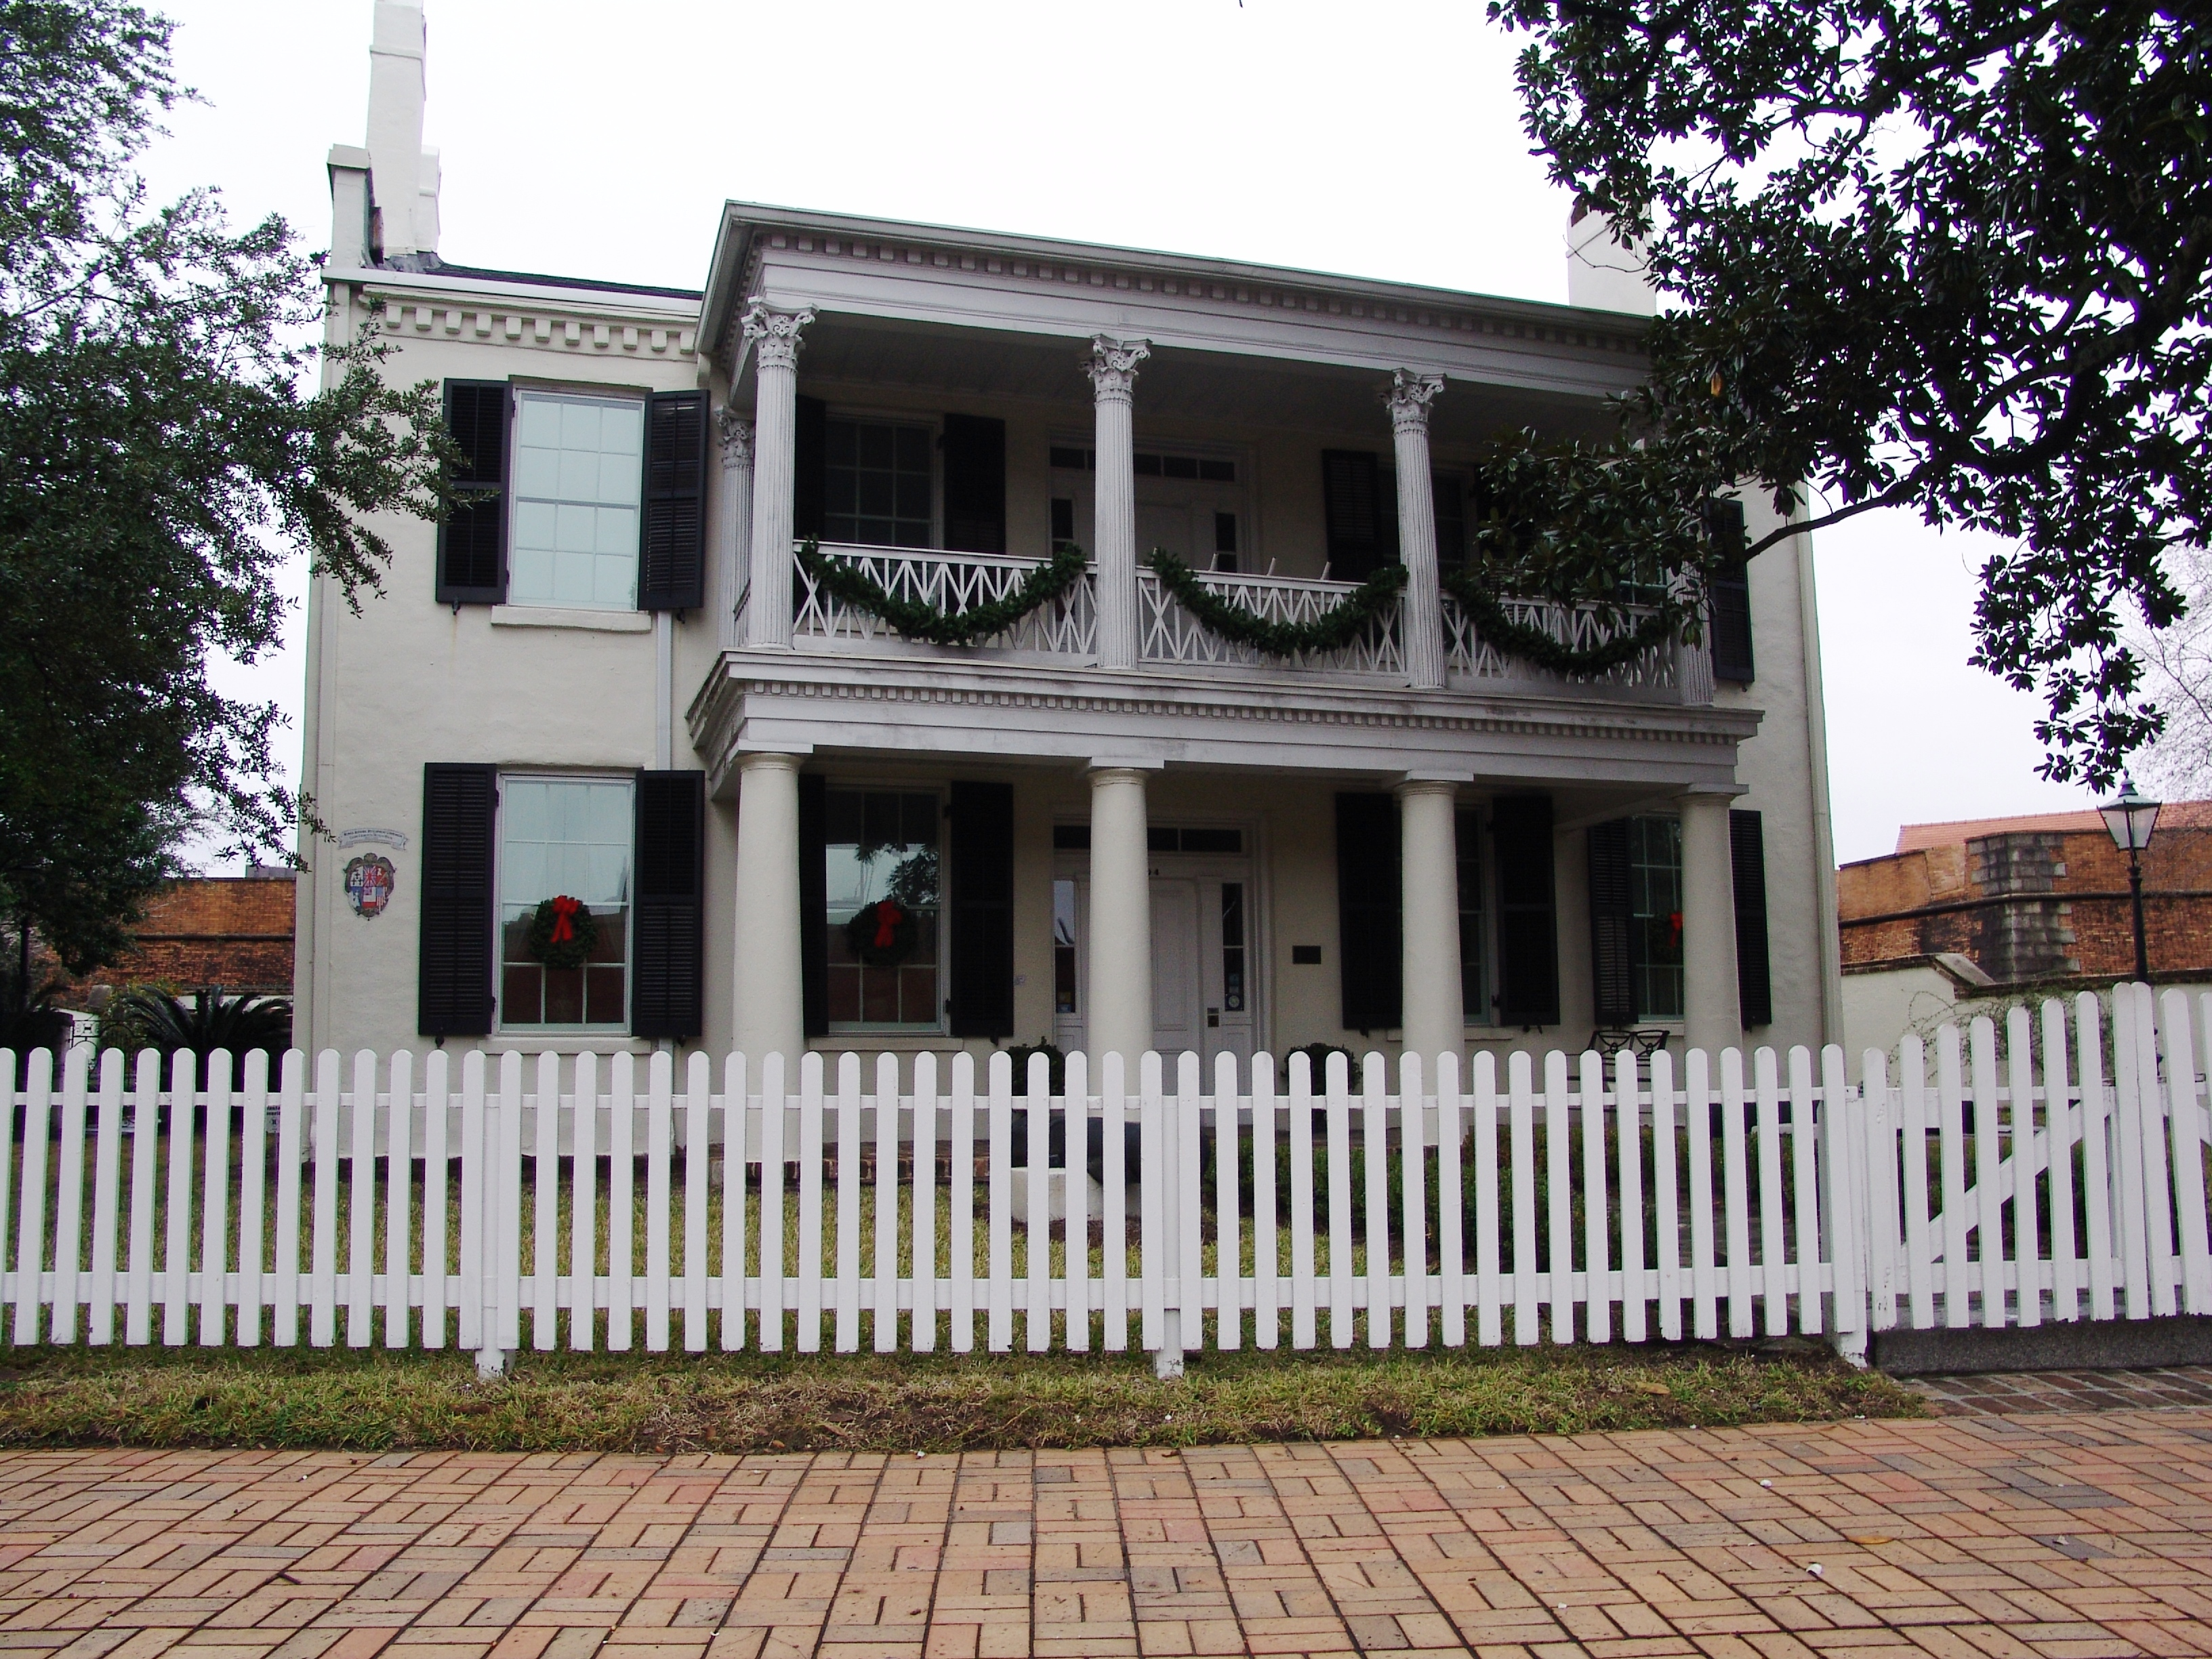 The Conde–Charlotte House Museum was a Navy officer's club during World War II.